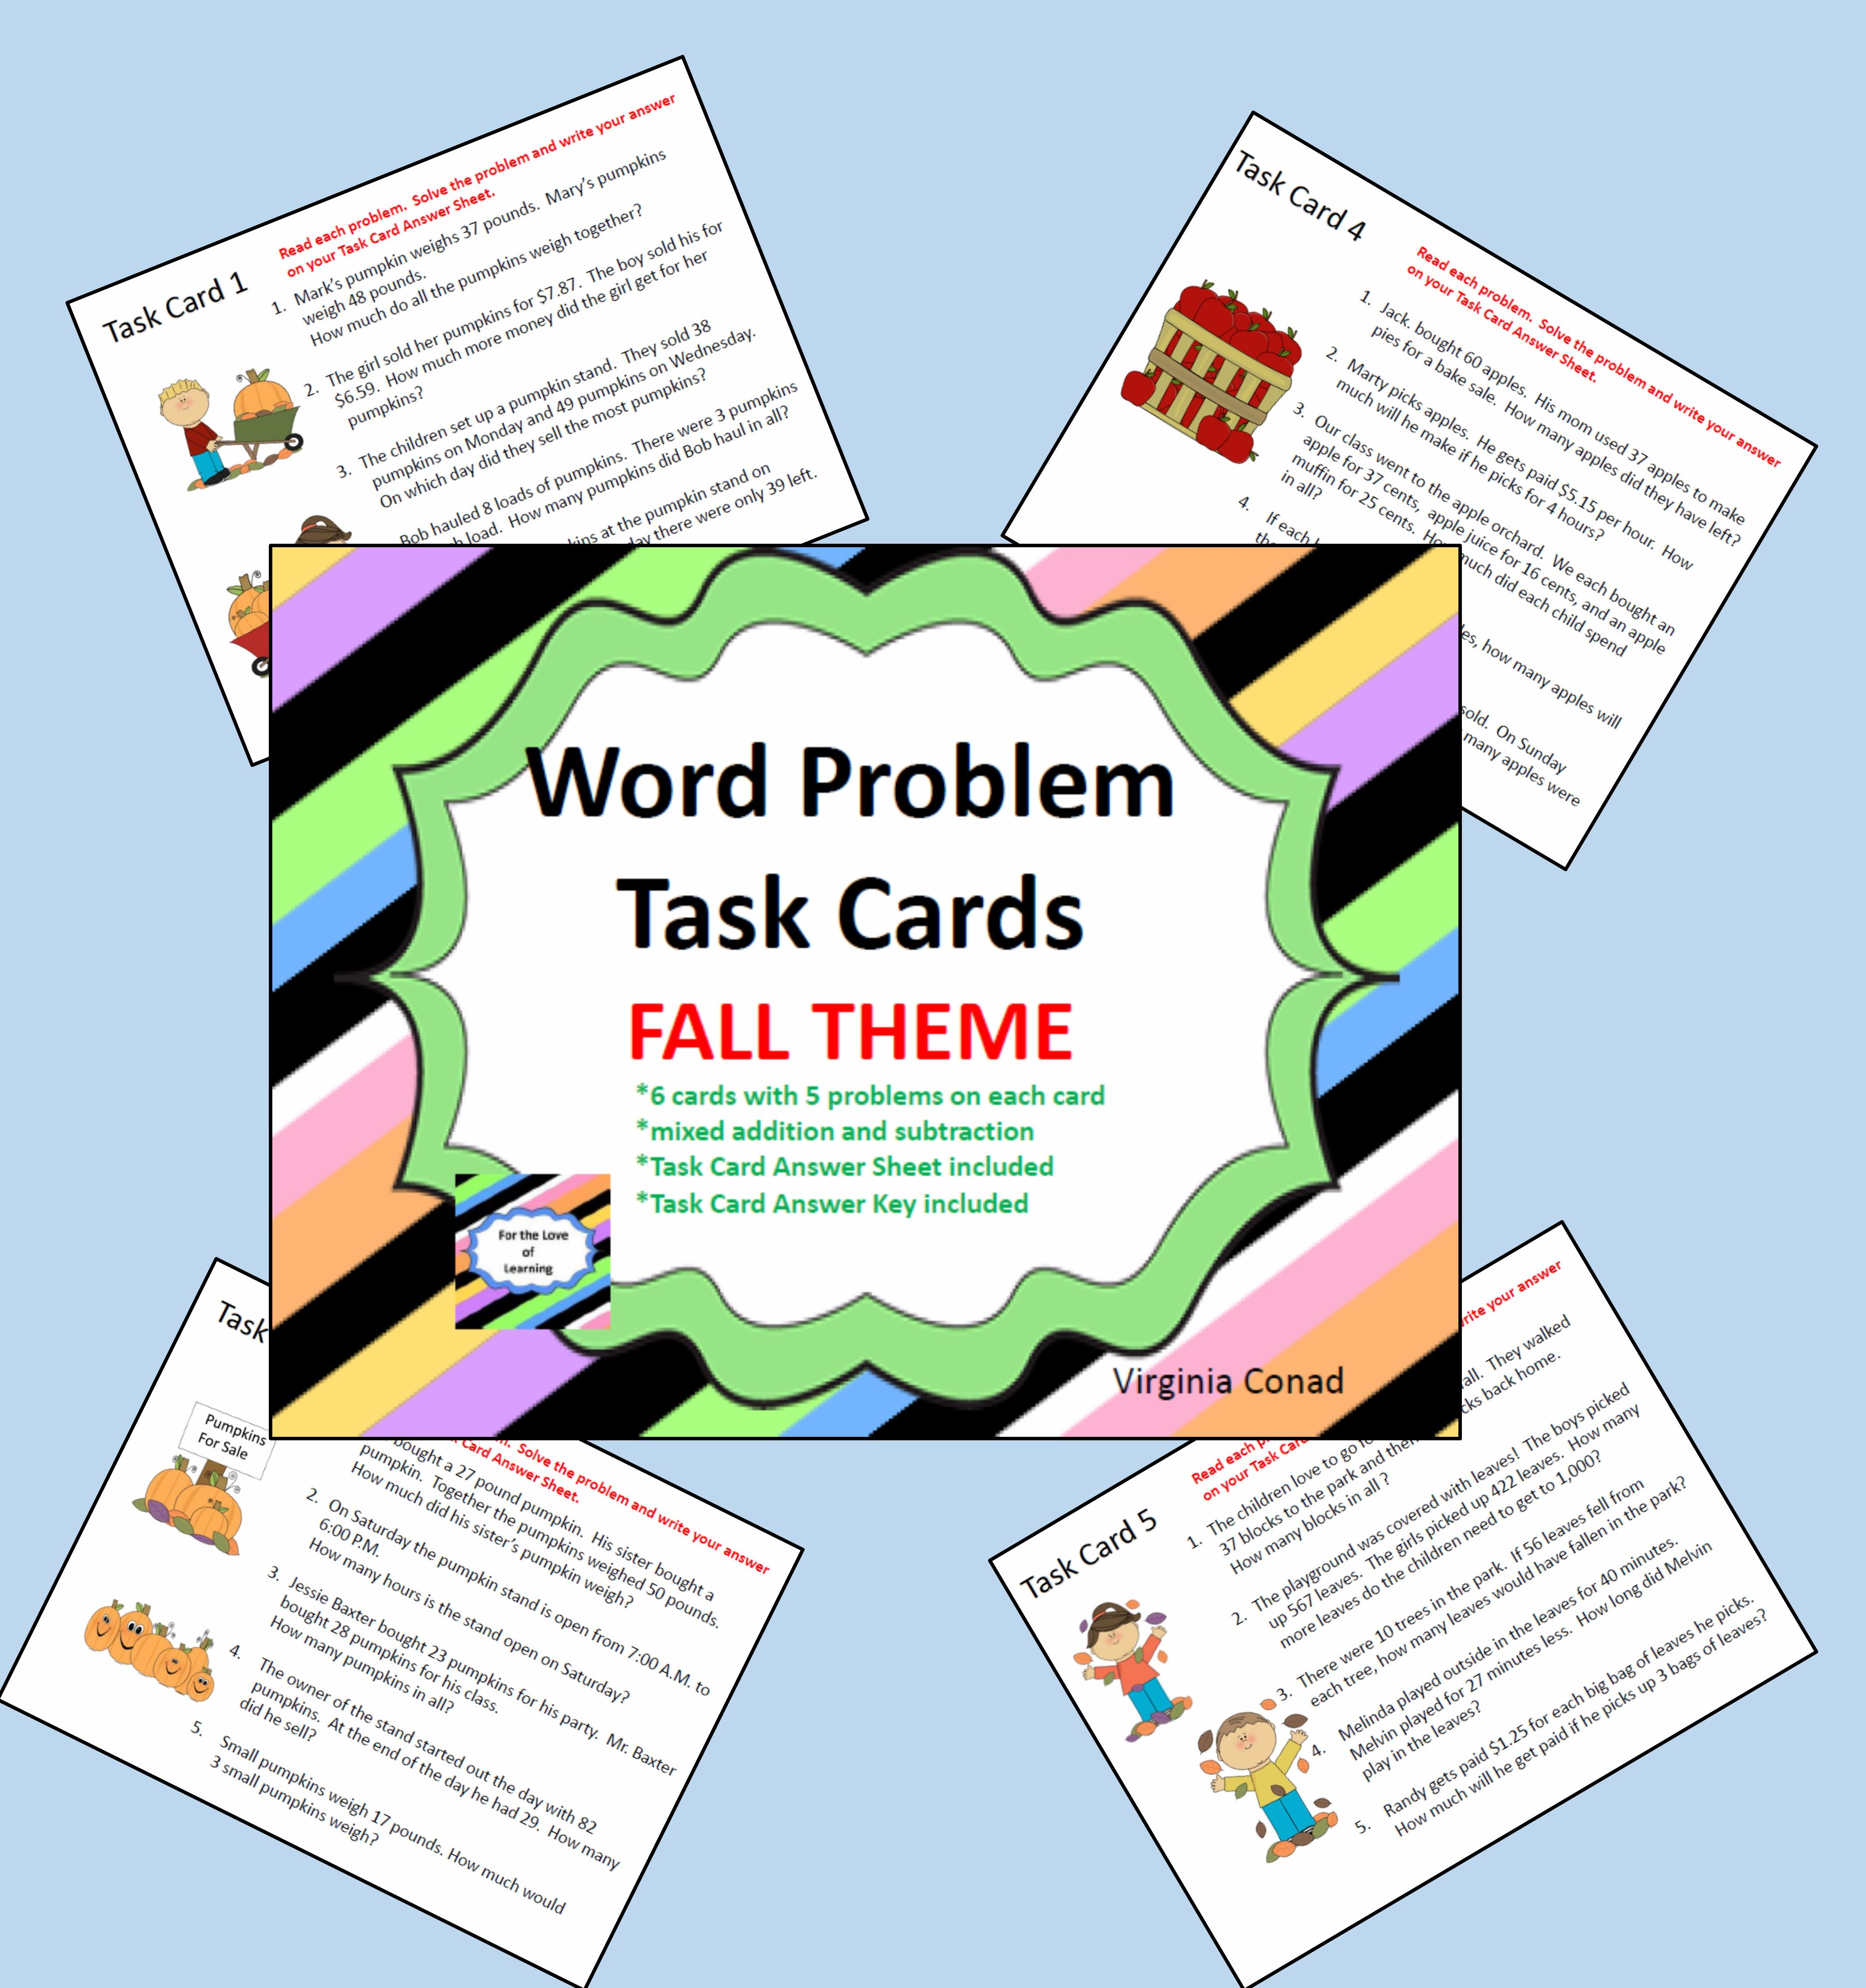 Word Problem Task Cards Fall Theme